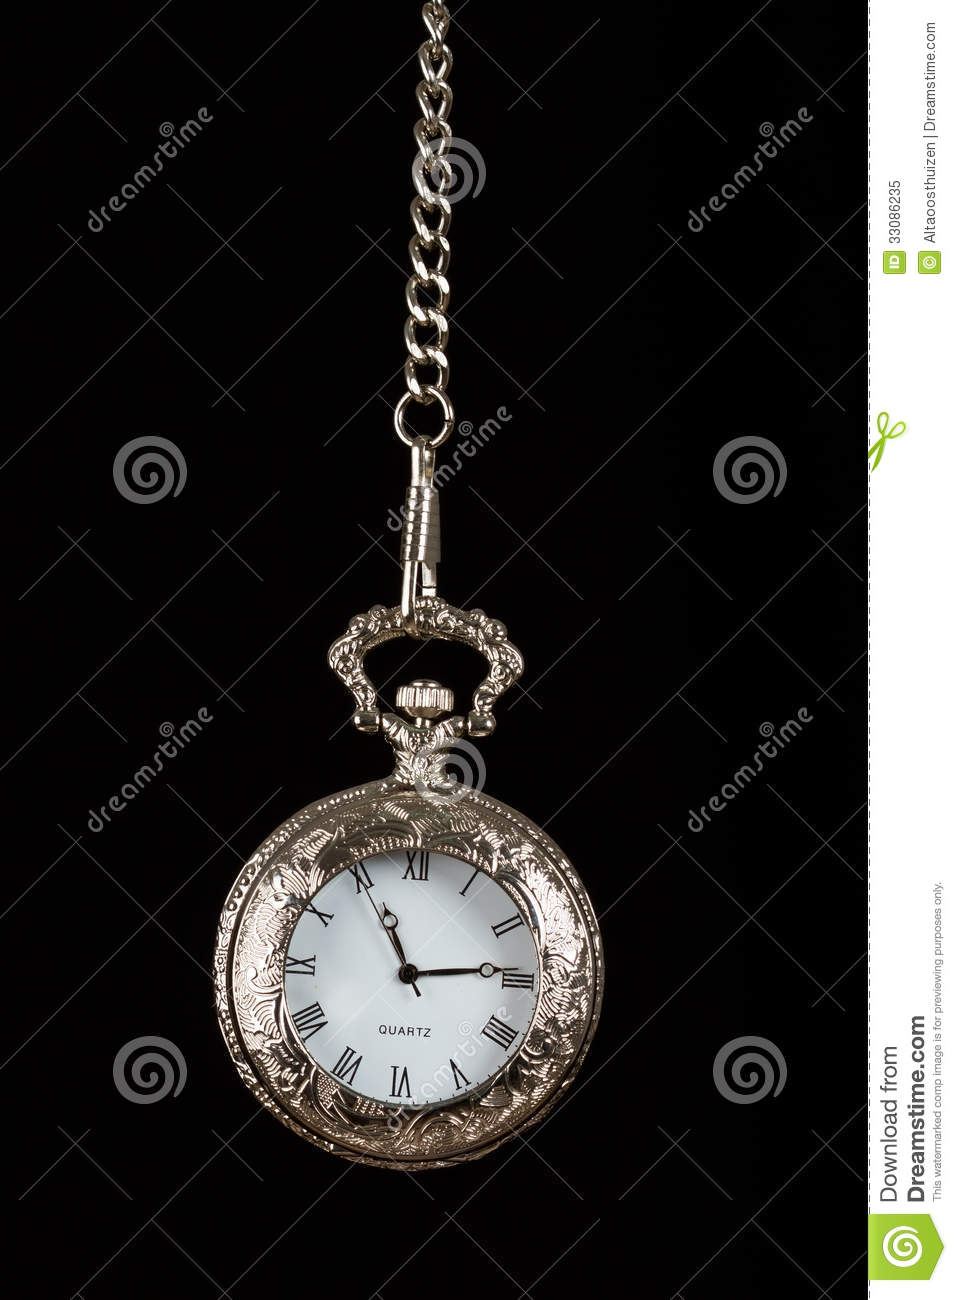 Silver Pocket Watch Hang On Chain Royalty Free Stock Photo ...